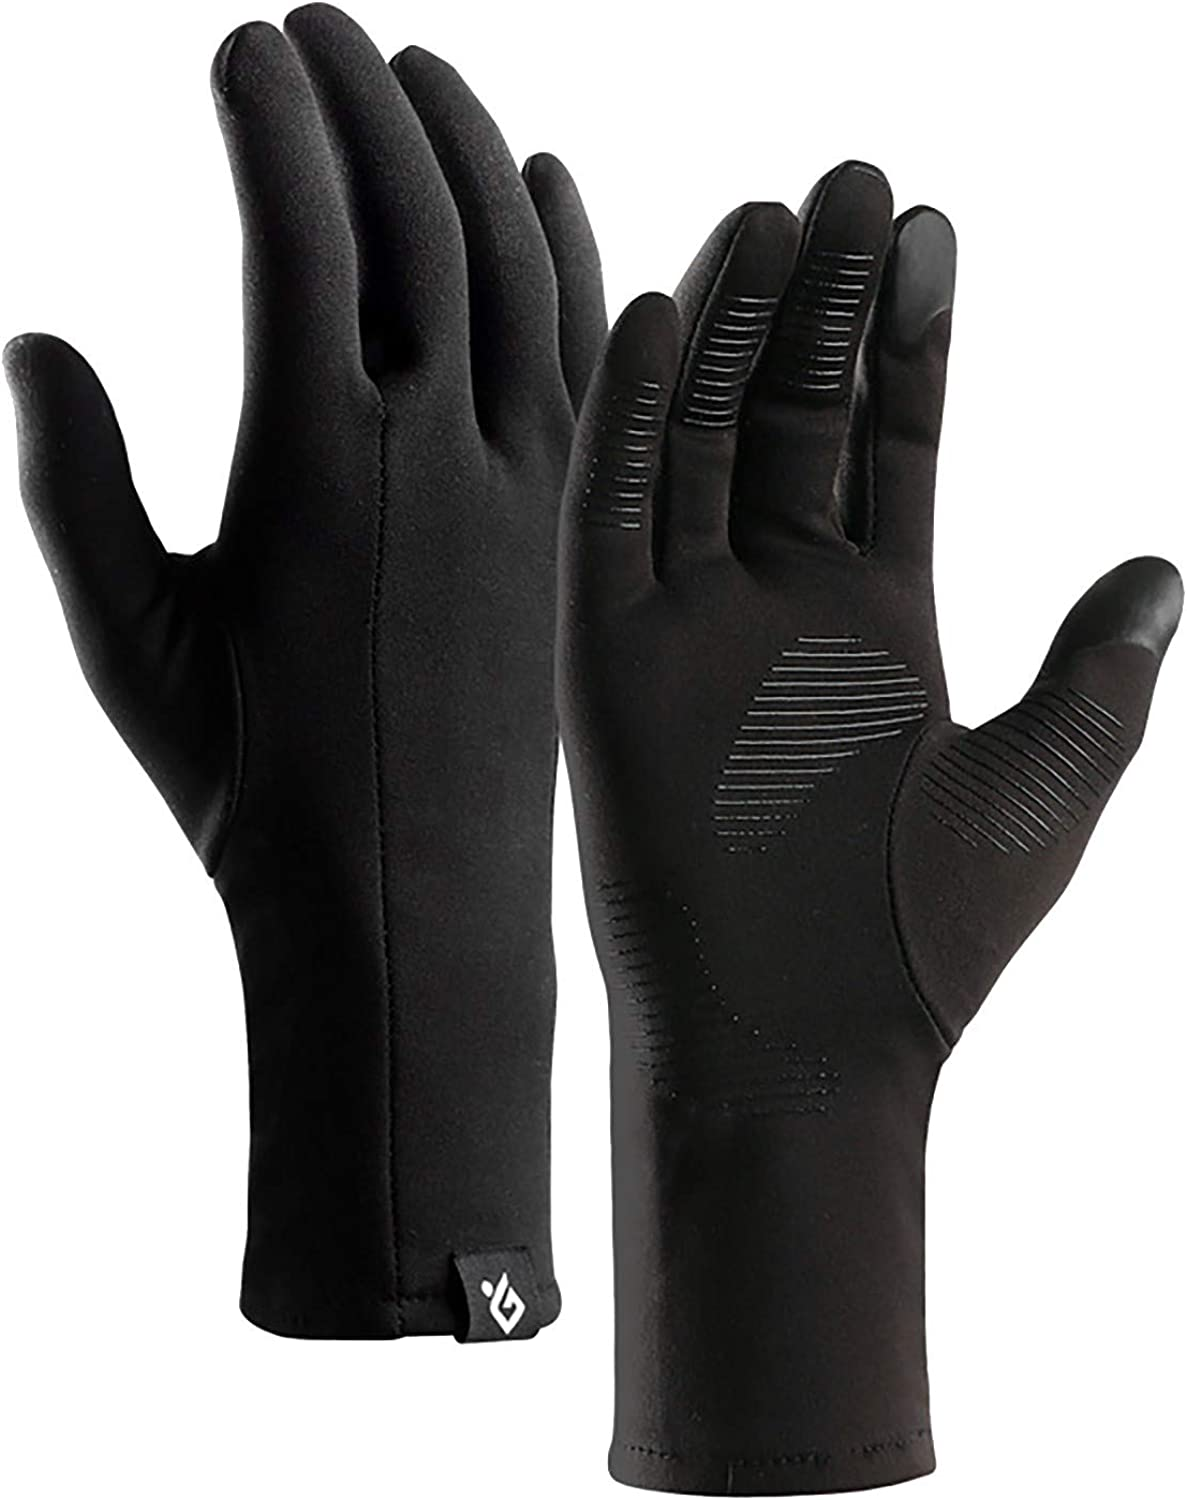 Winter Gloves Waterproof Outdoor Winter Warm Snowboard Gloves Cold Weather Running Cycling Sports Gloves